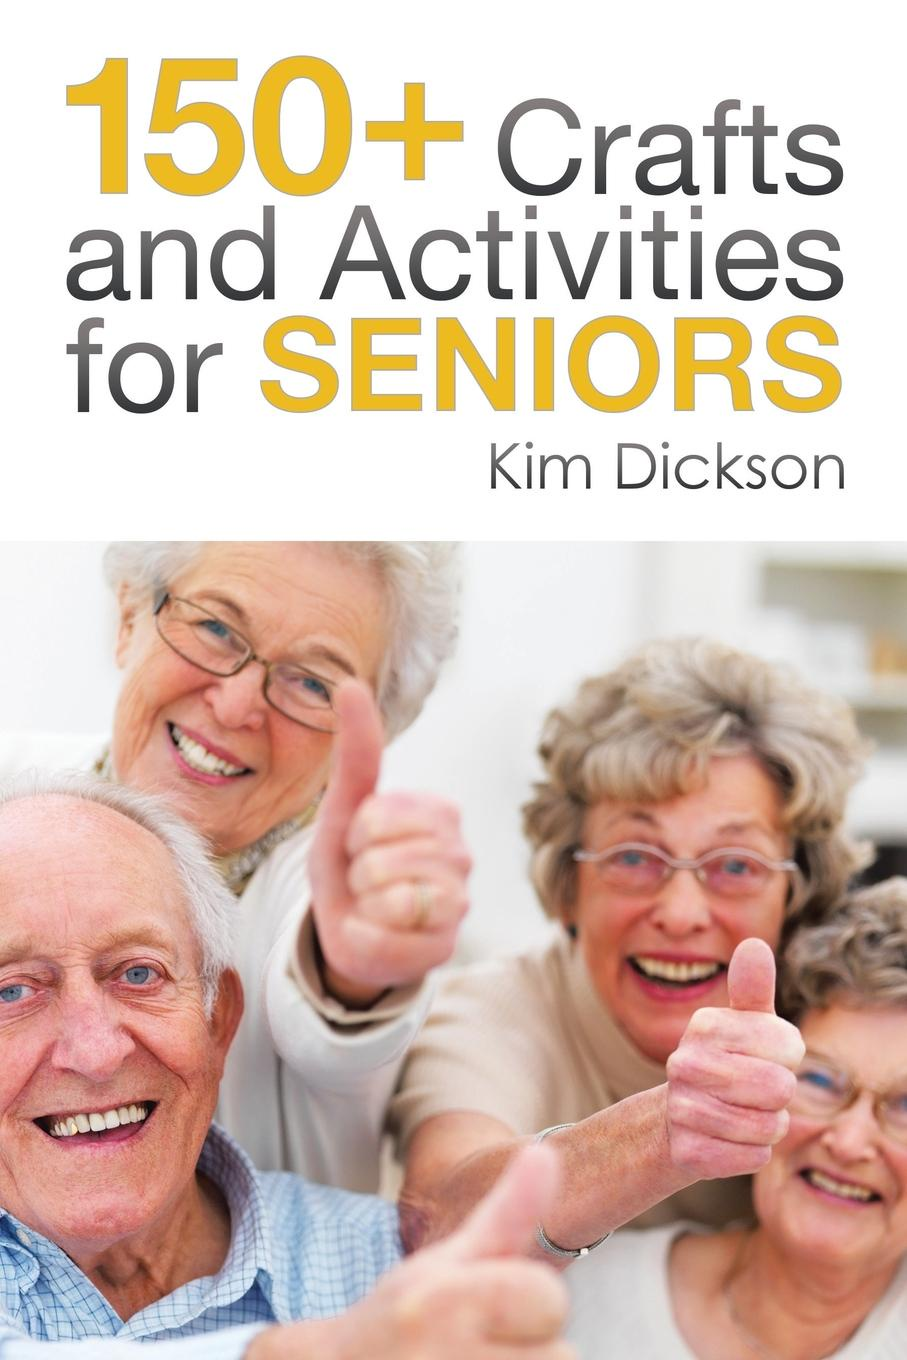 Kim Dickson 150+ Crafts and Activities for Seniors dwight spivey ipad for seniors for dummies